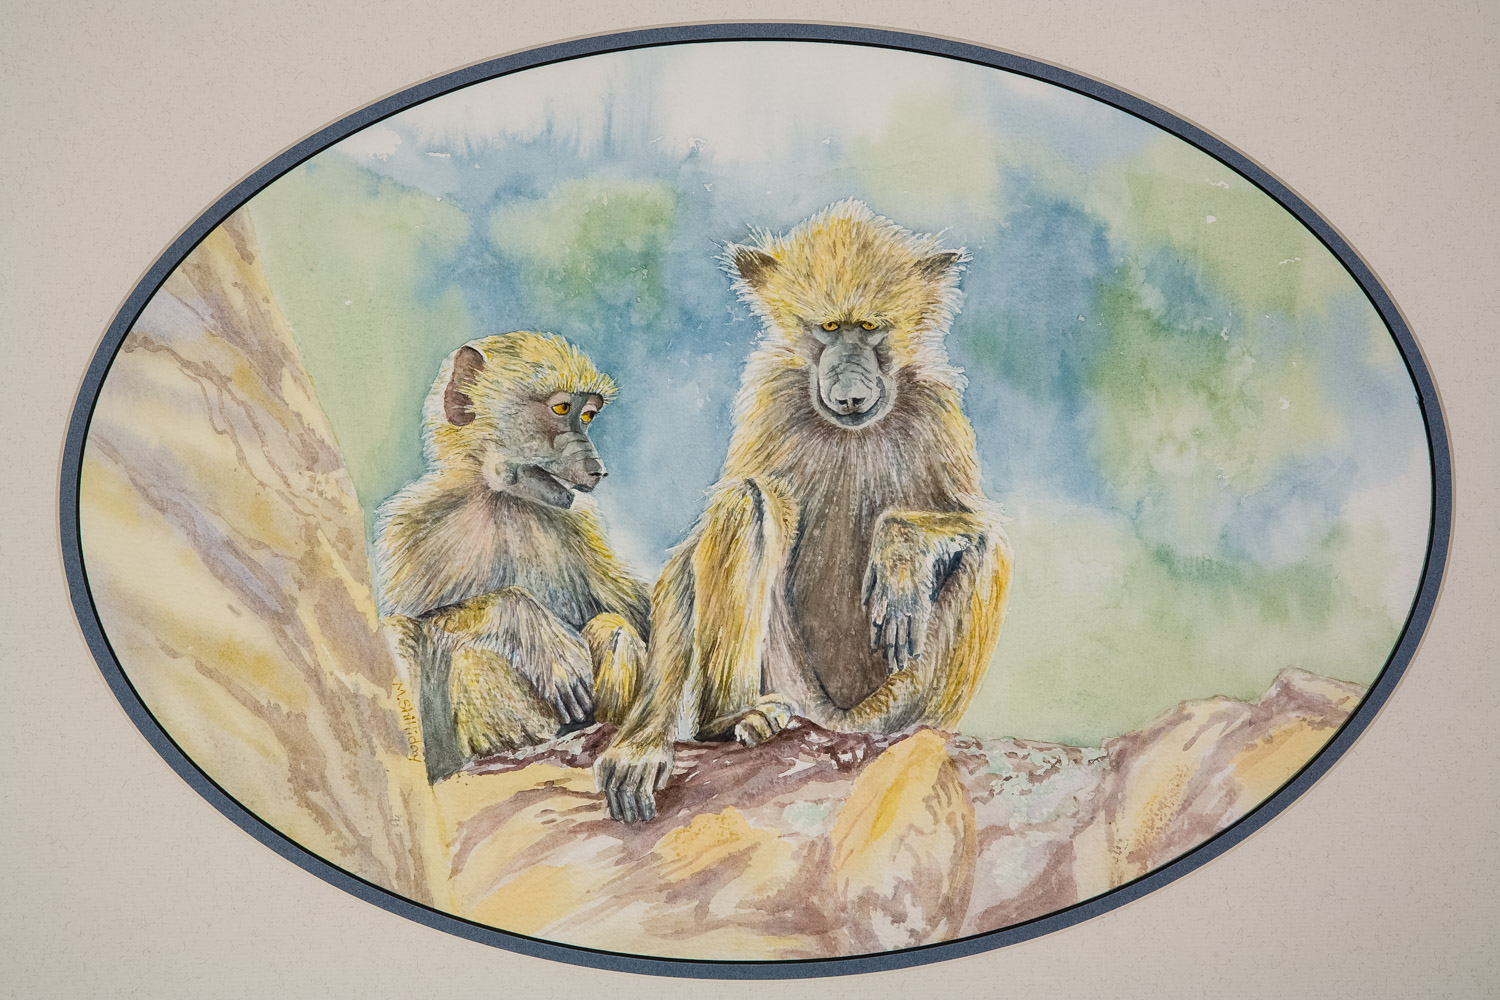 Two Yellow Baboons on a tree limb